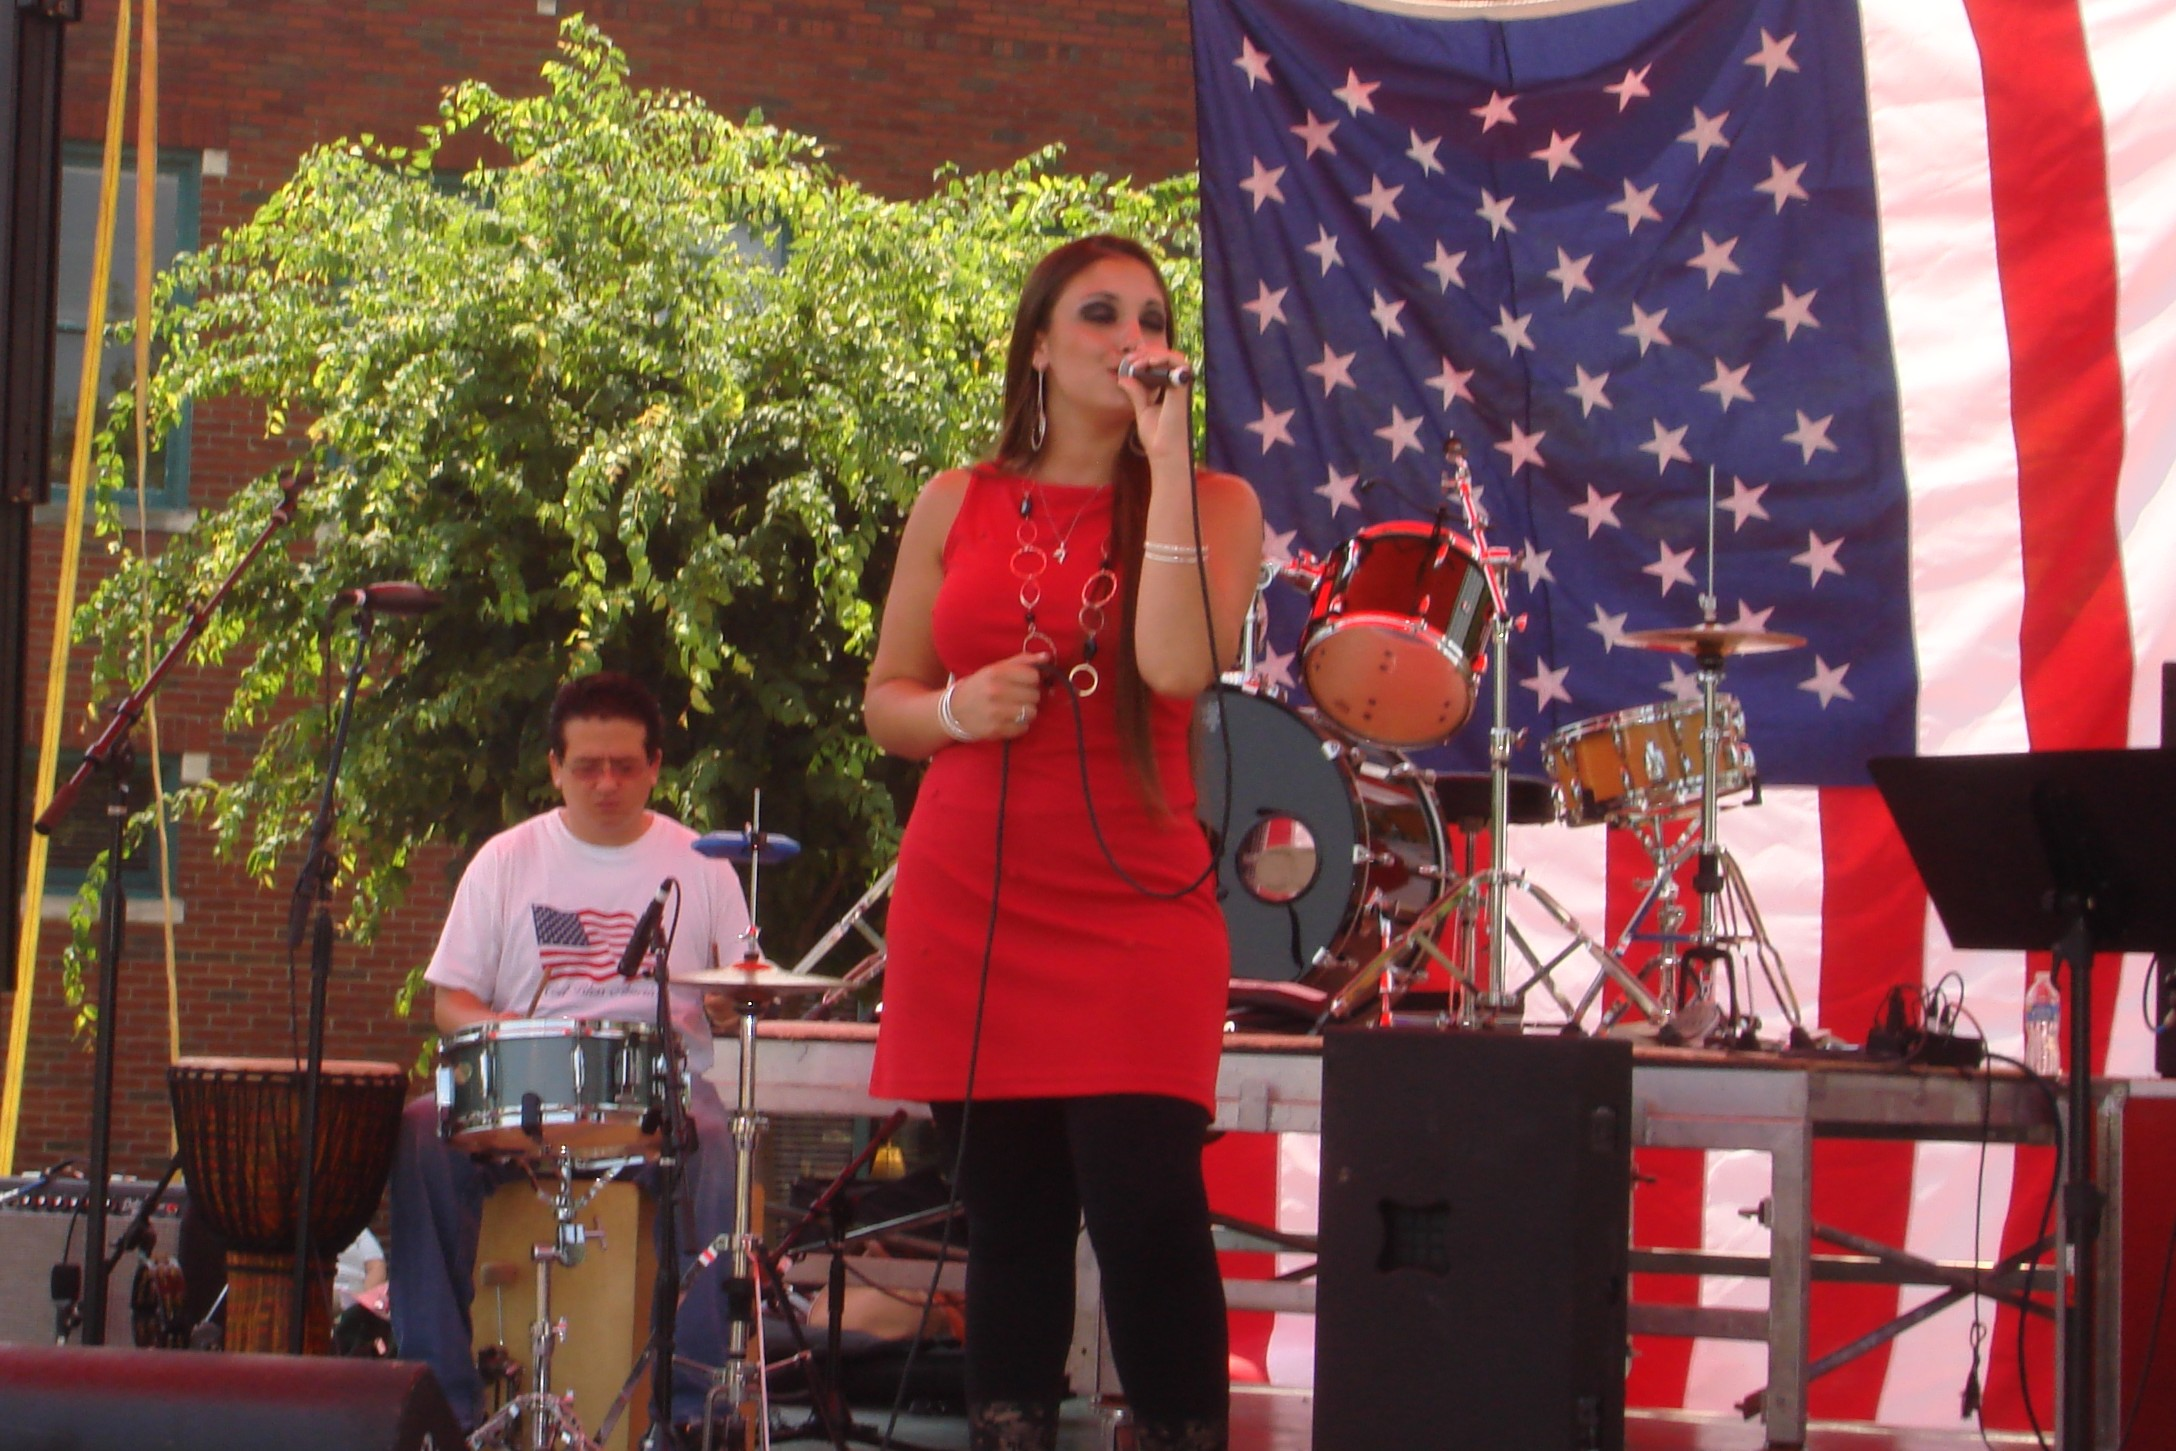 Courtney singing on the 4th